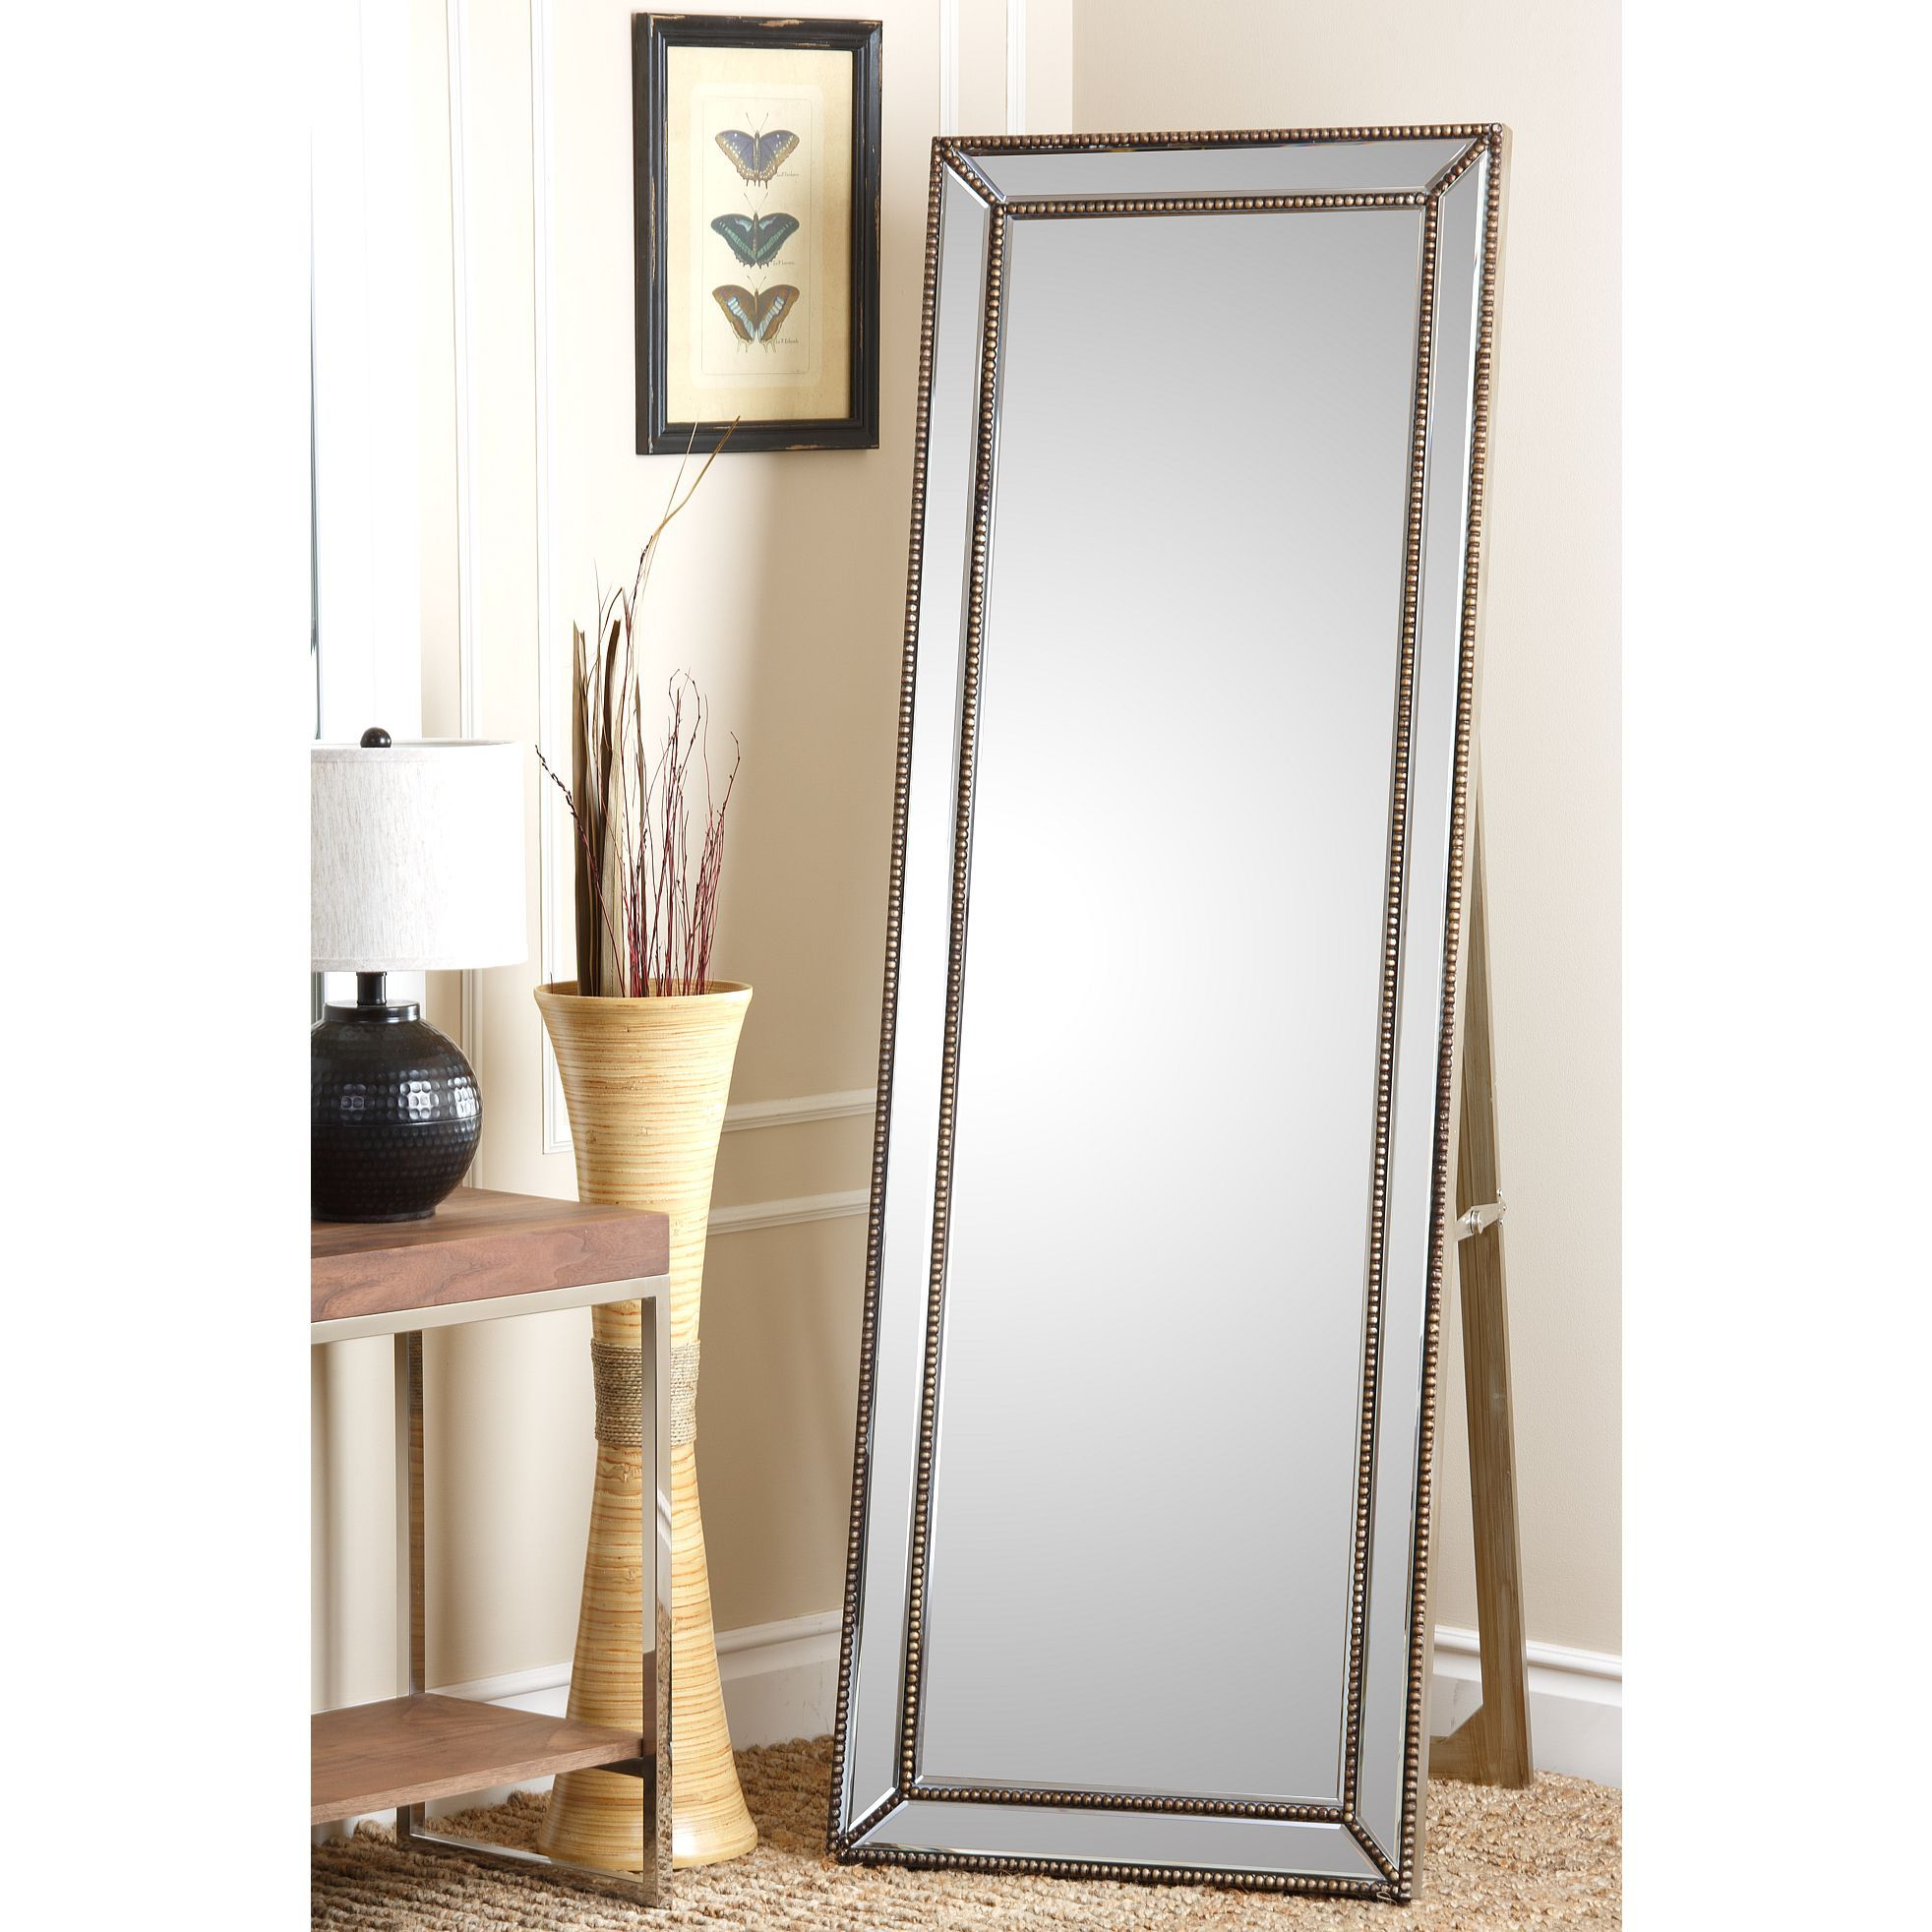 Add a new look to any space with the elegant cosmo floor for Standing mirror frame